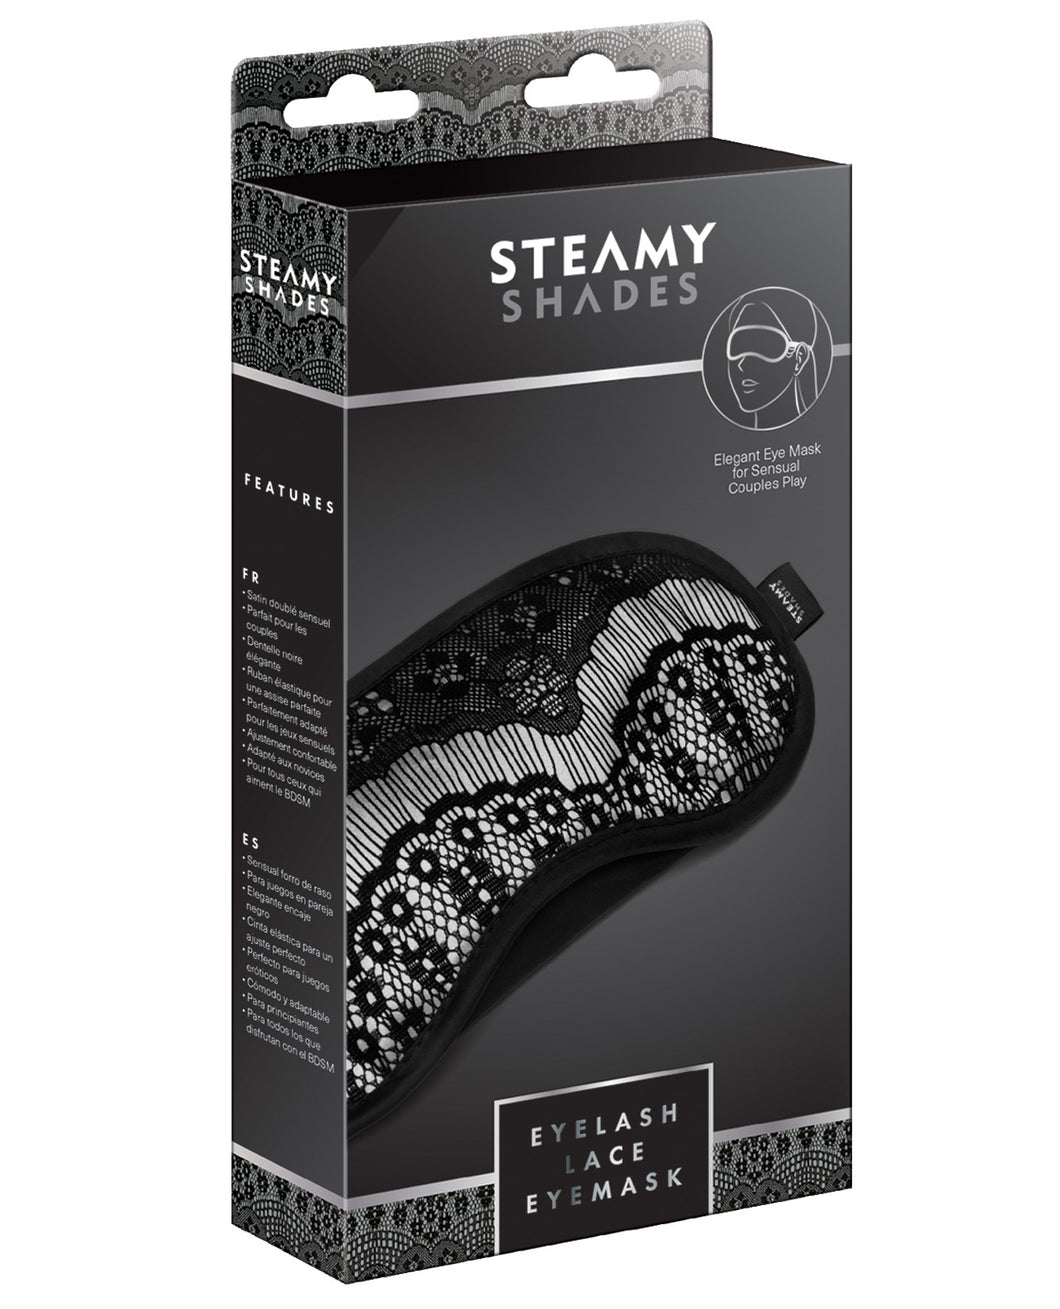 Steamy Shades Eyelash Lace Eyemask